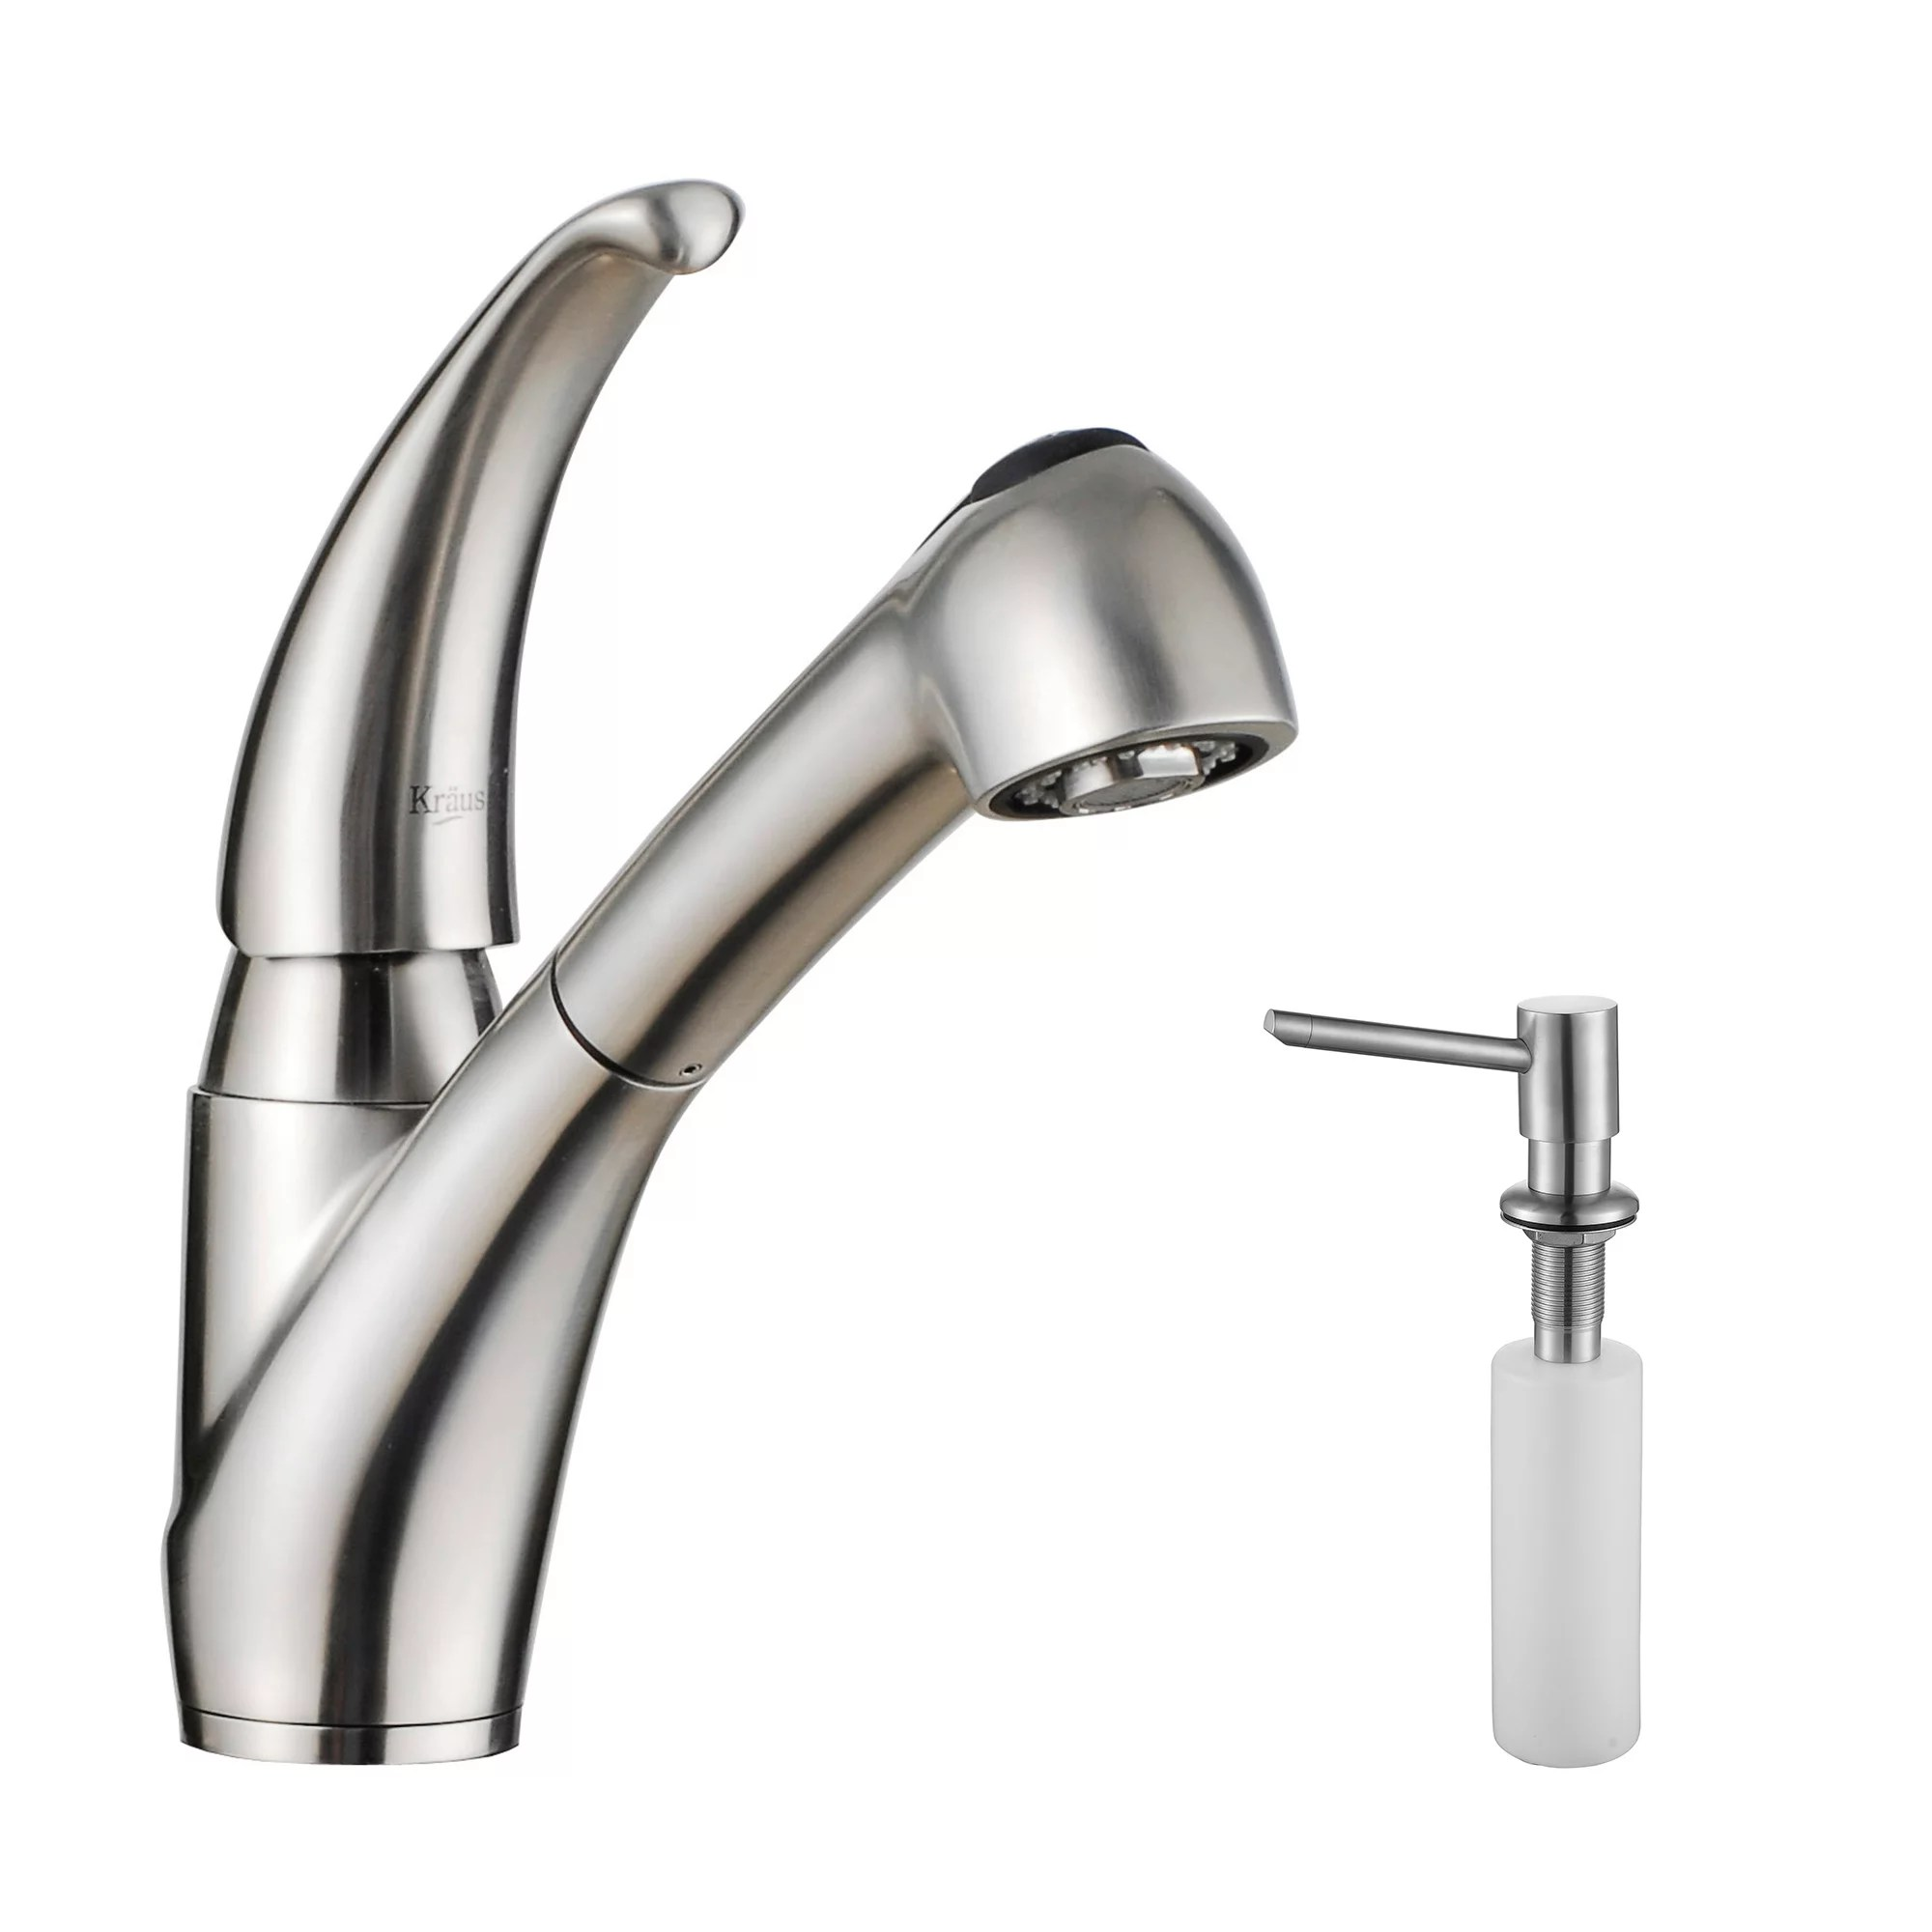 kraus kitchen faucet personalized signs kpf 2110 sd20 stainless steel pullout spray with soap dispenser com